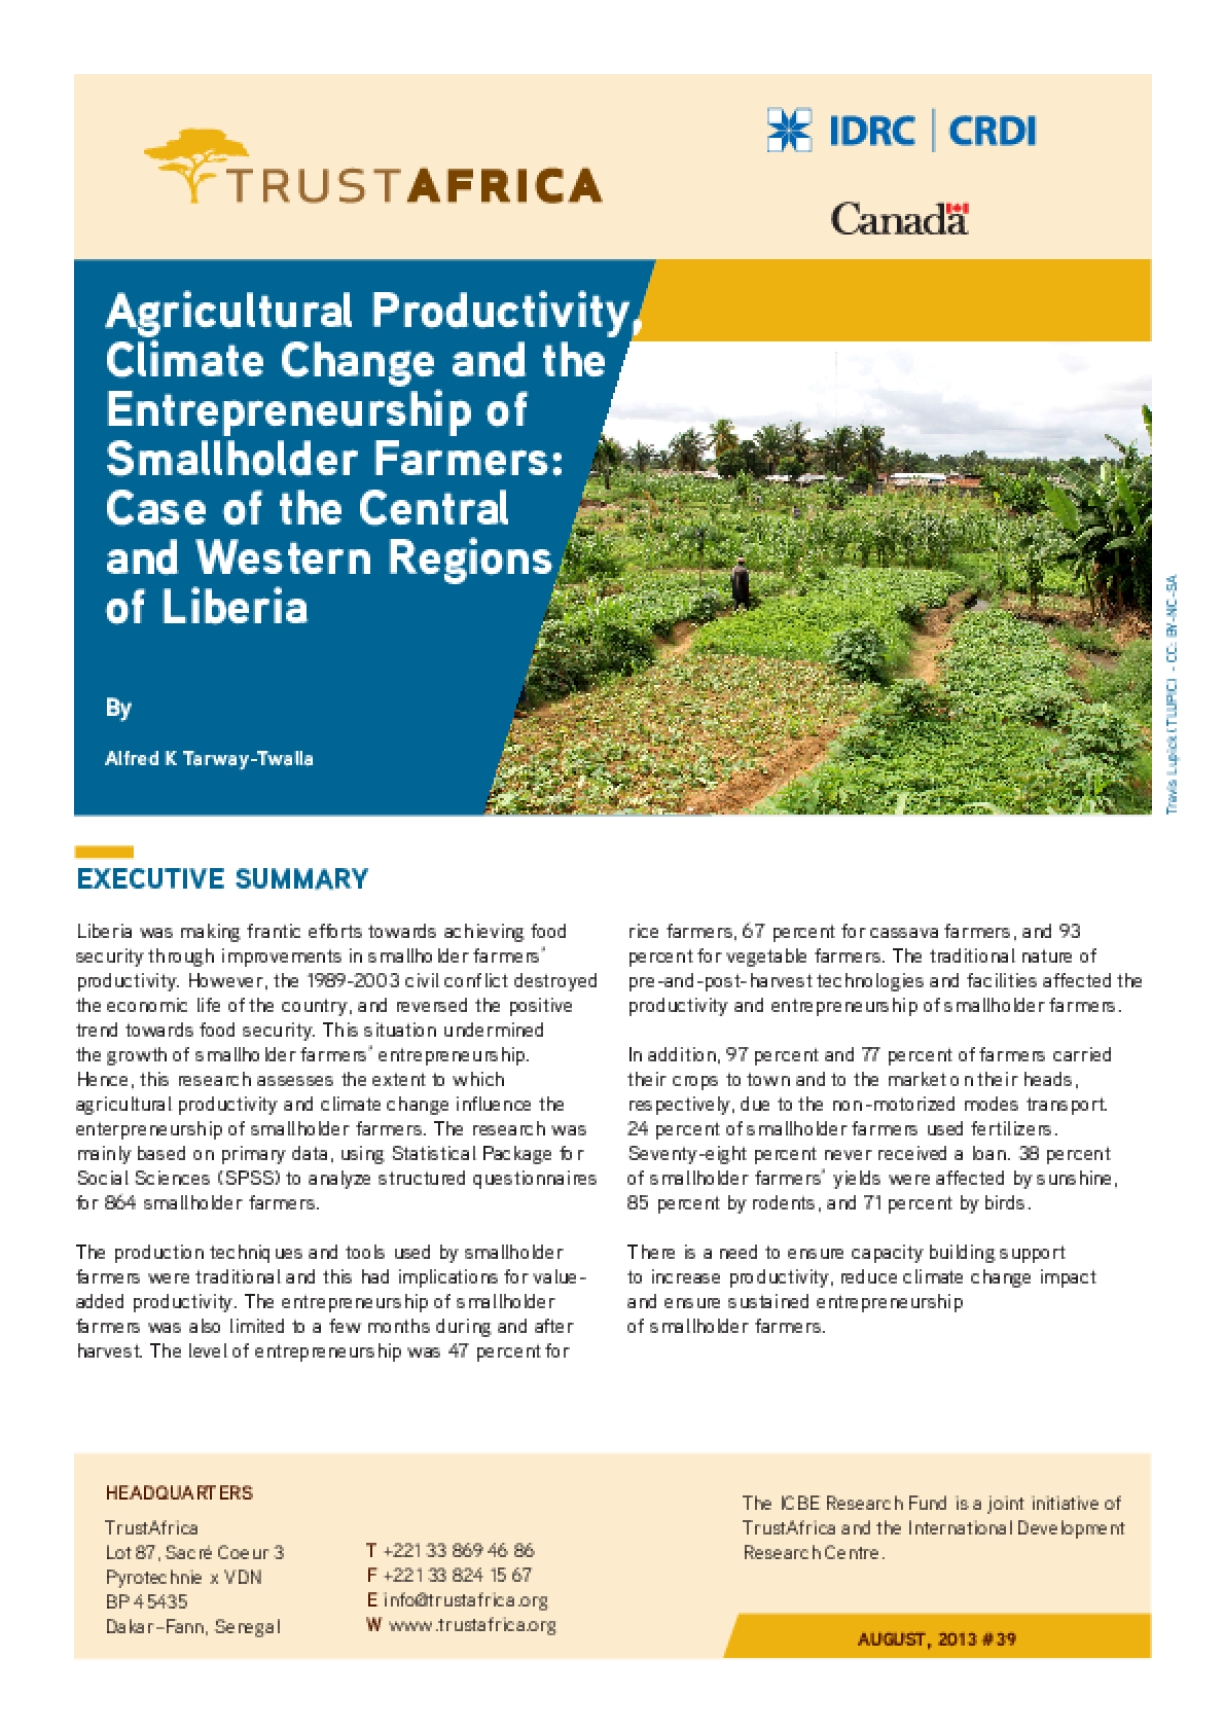 Agricultural Productivity, Climate Change and the Entrepreneurship of Smallholder Farmers: Case of the Central and Western Regions of Liberia